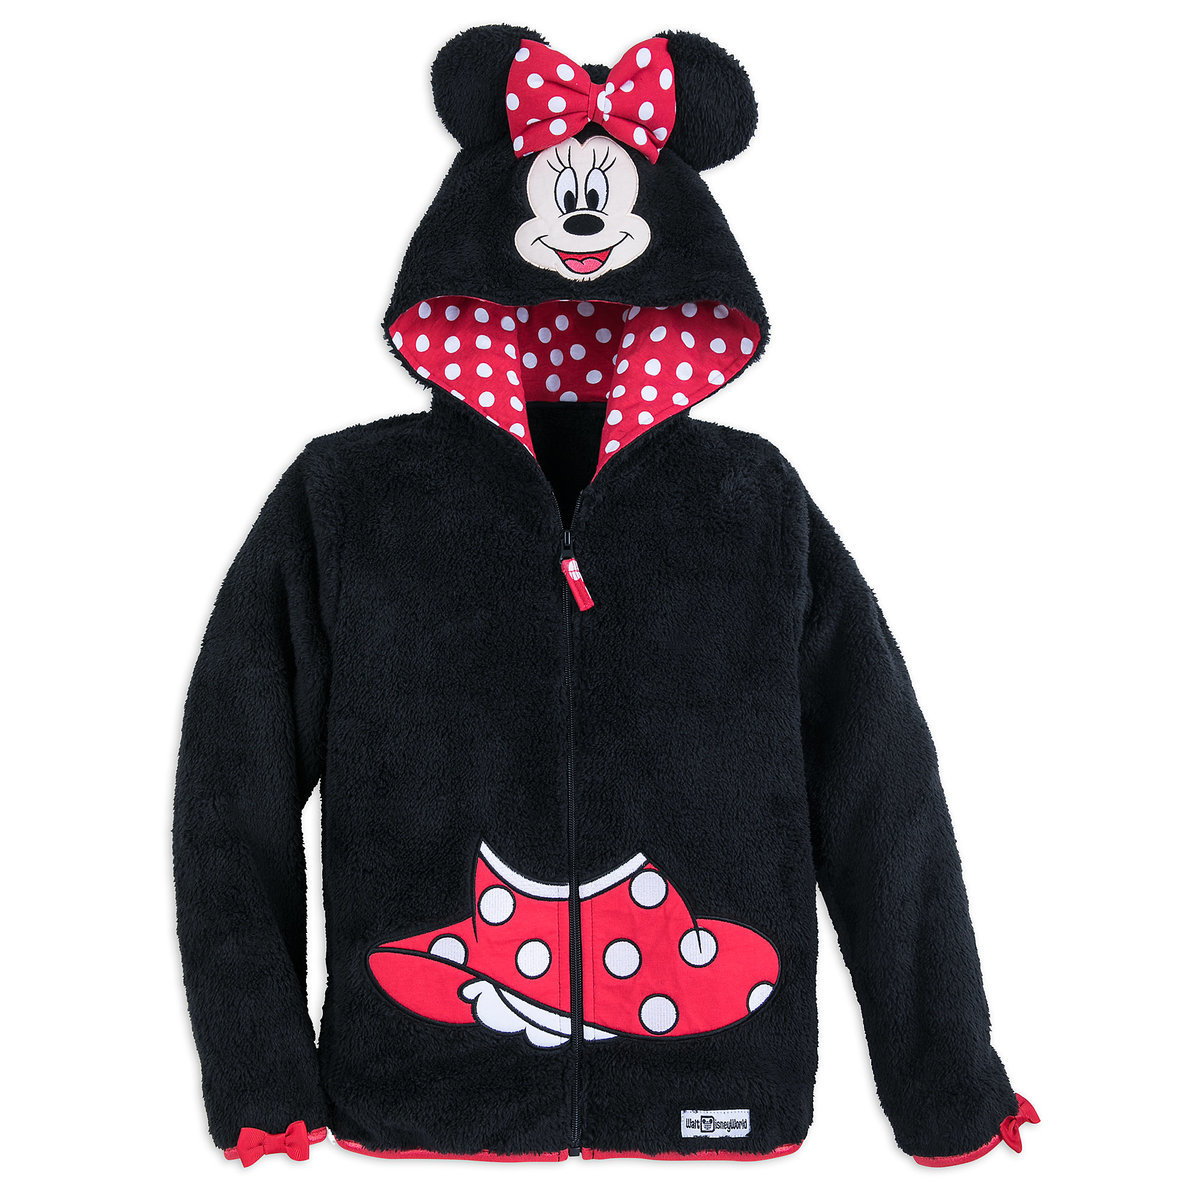 33d98c25b Product Image of Minnie Mouse Hooded Fleece Jacket for Girls - Walt Disney  World # 1